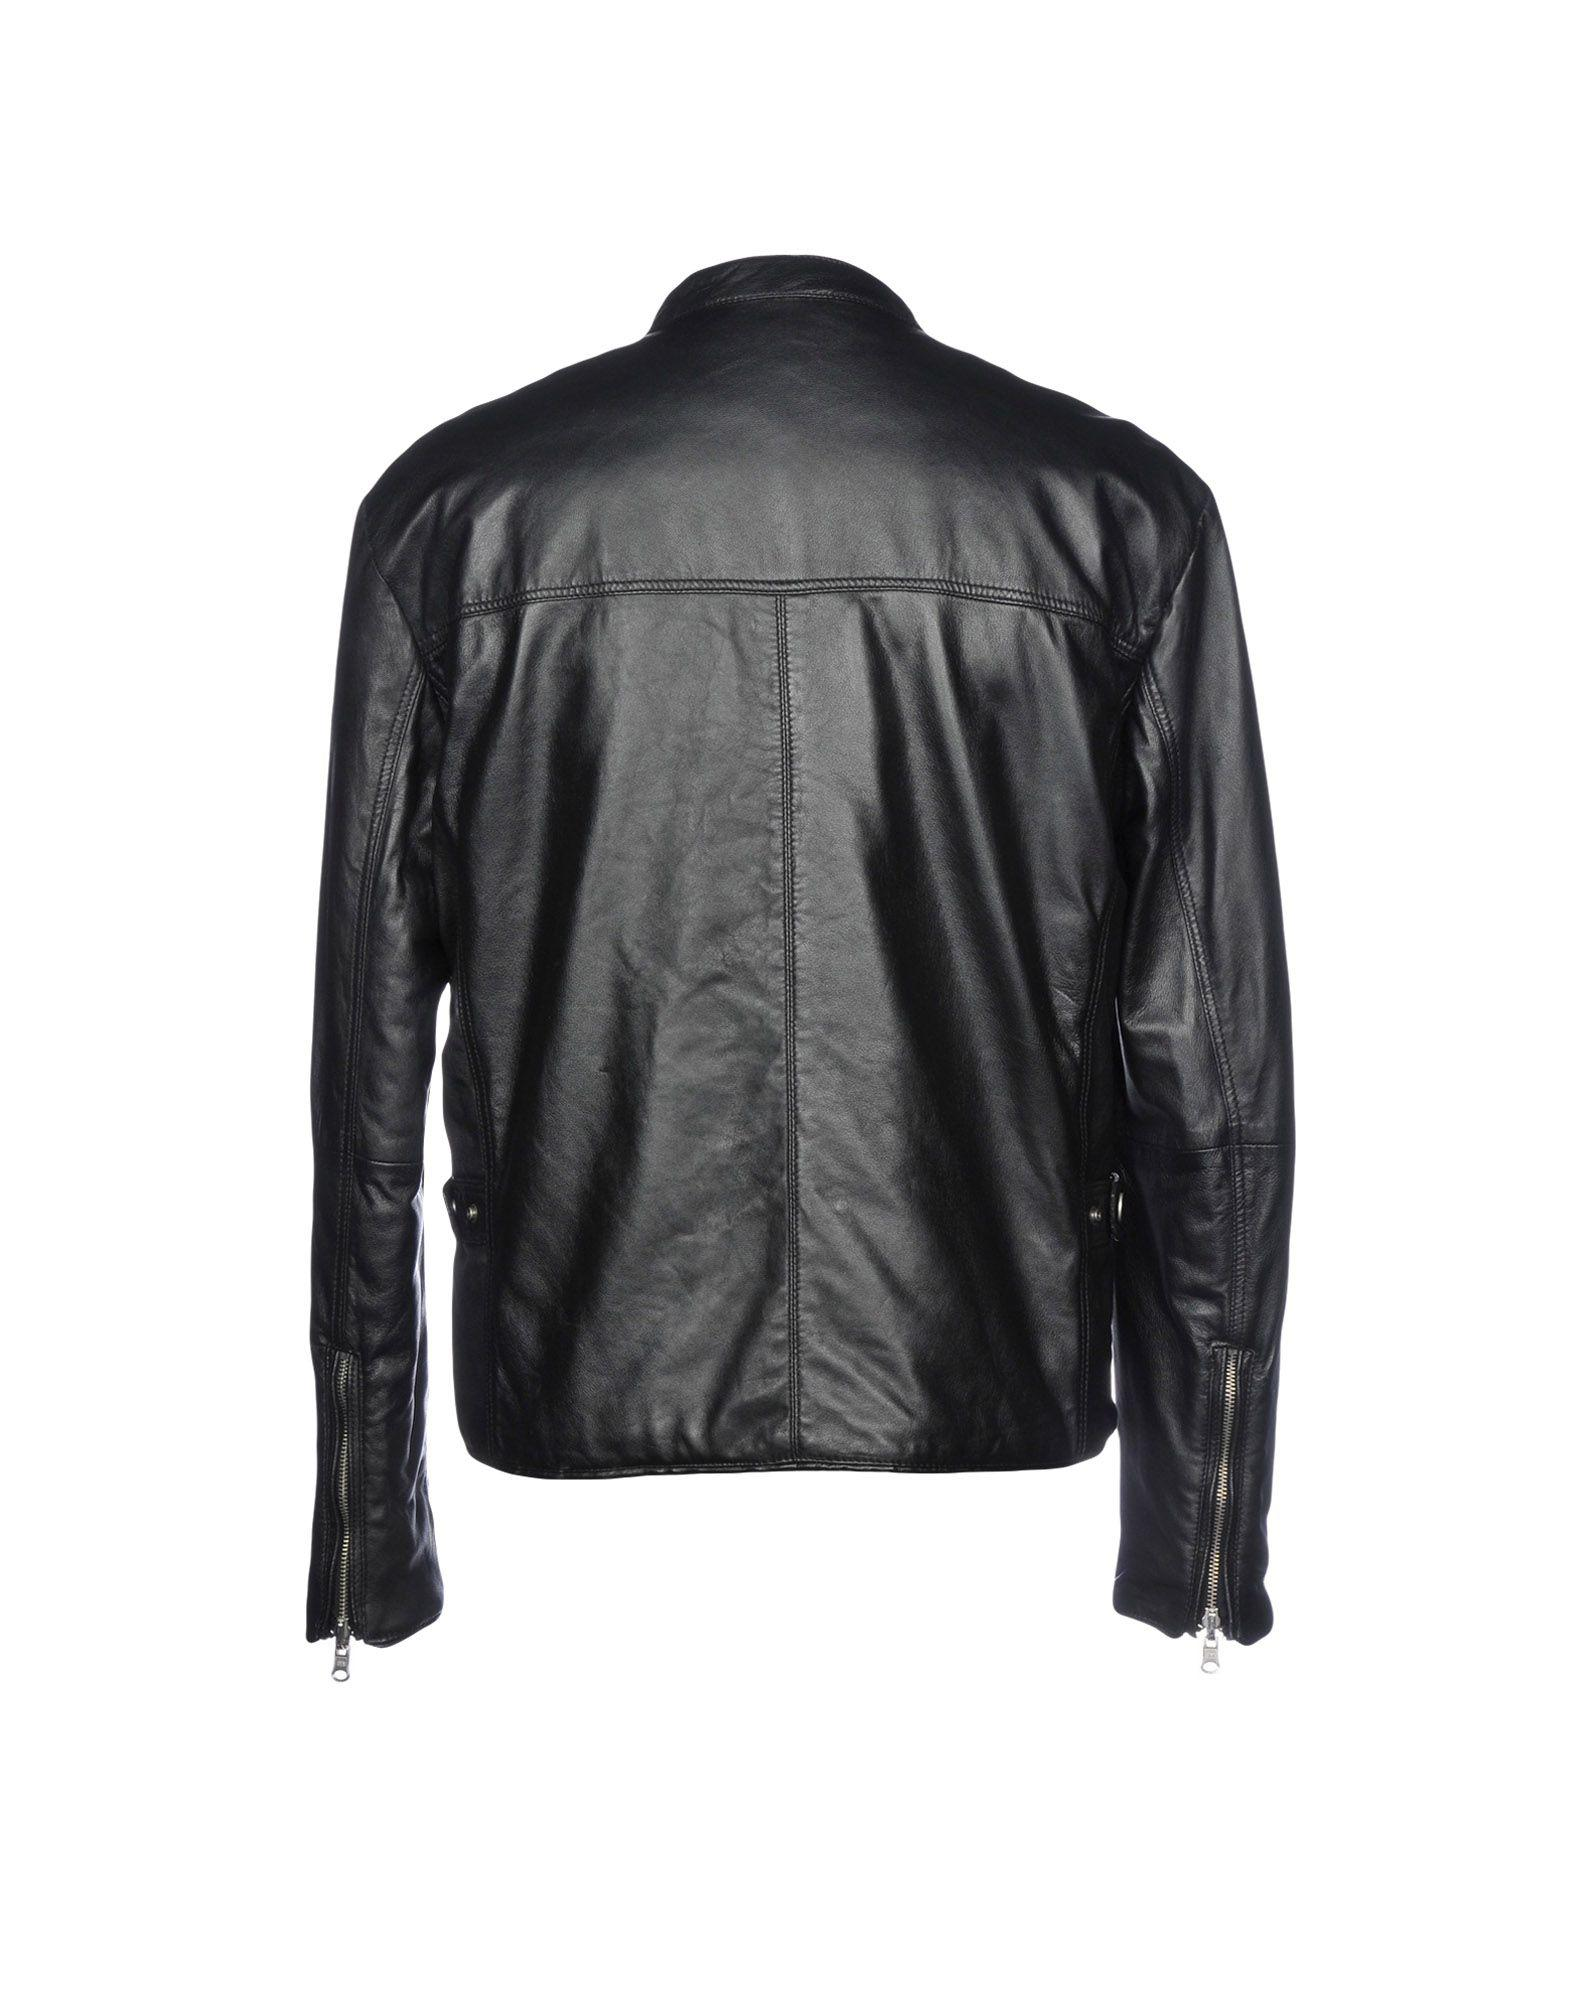 Paolo Pecora Leather Jacket in Black for Men